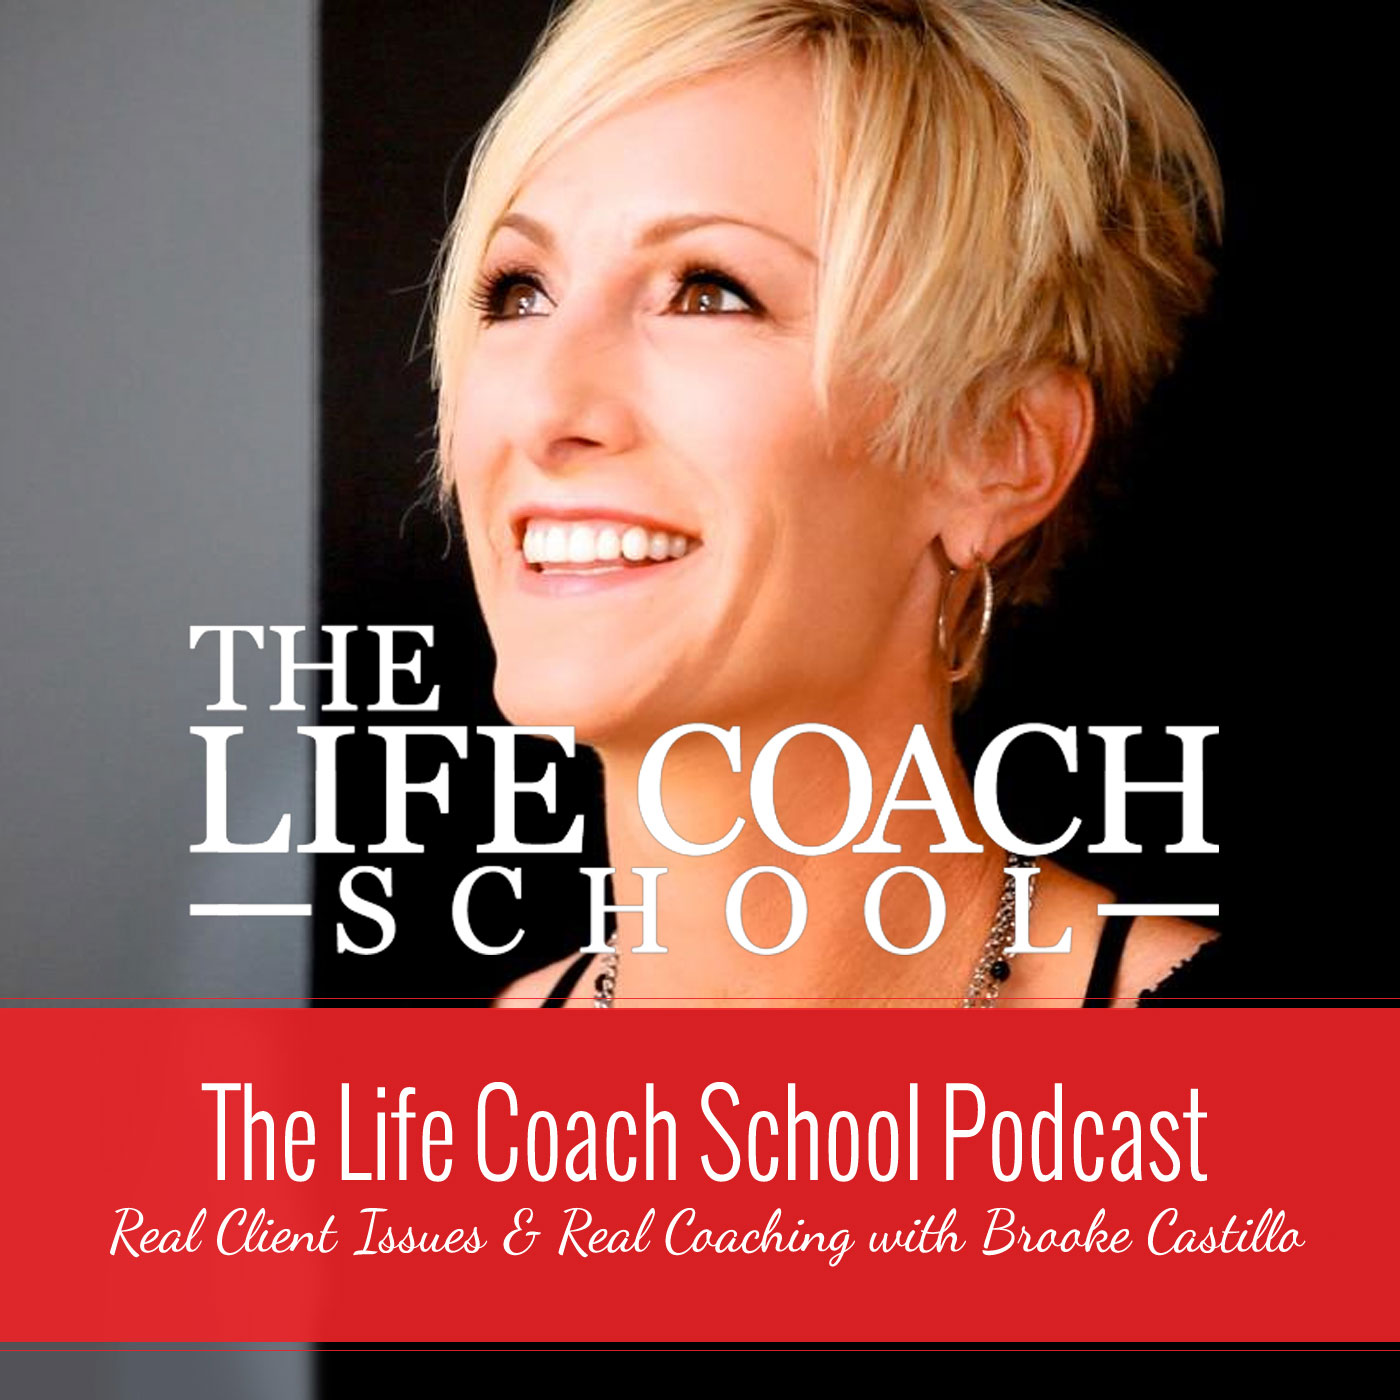 The life coach school podcast brook castillo.jpg